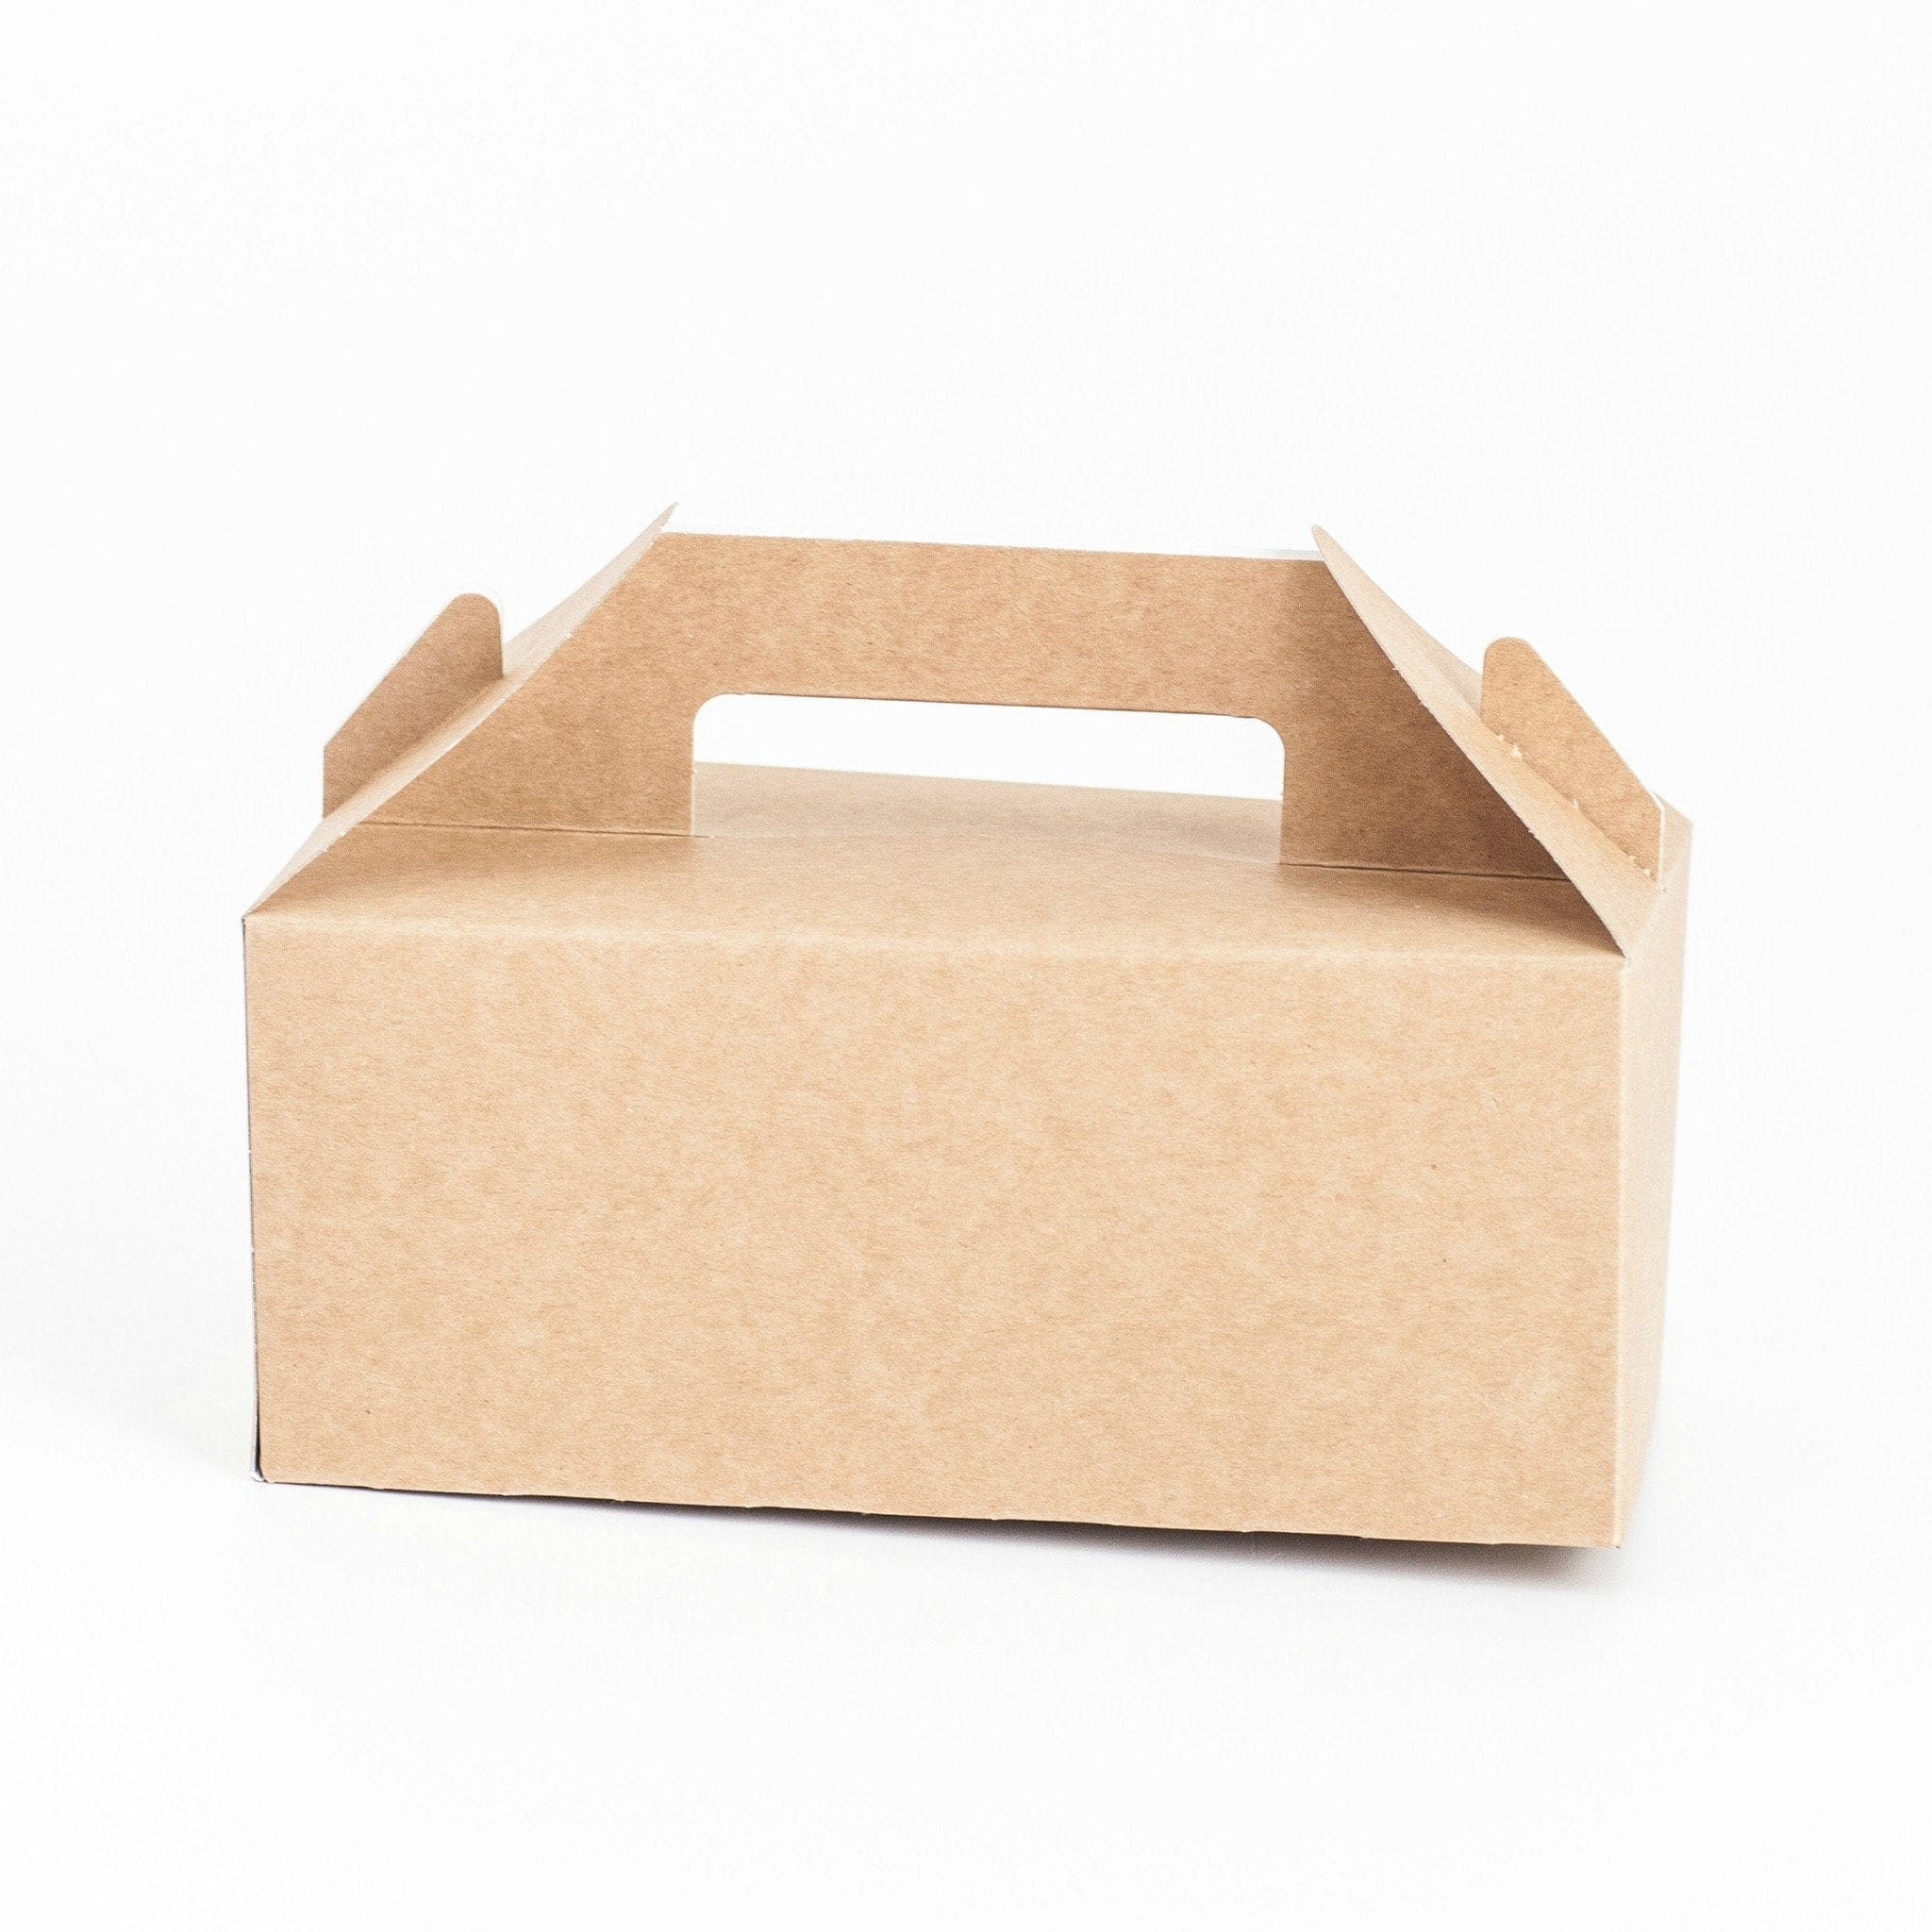 Gable Boxes (6 pack) Kraft or White